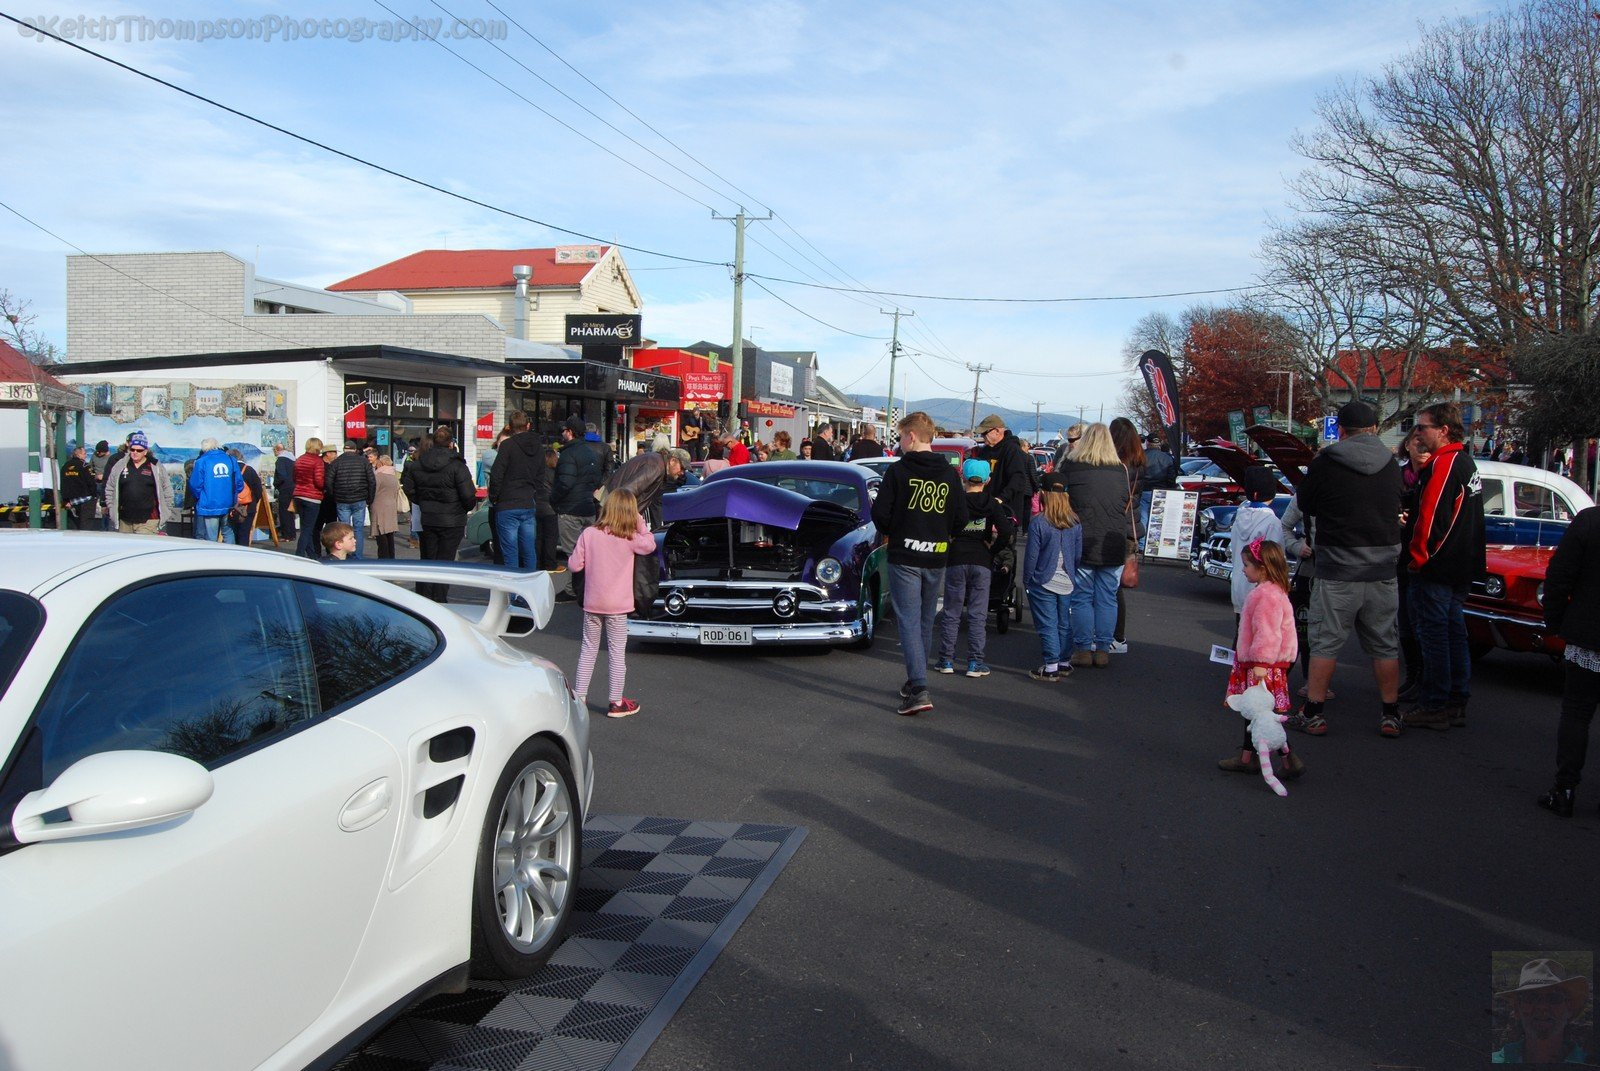 St. Marys Car and Bike Show 2019